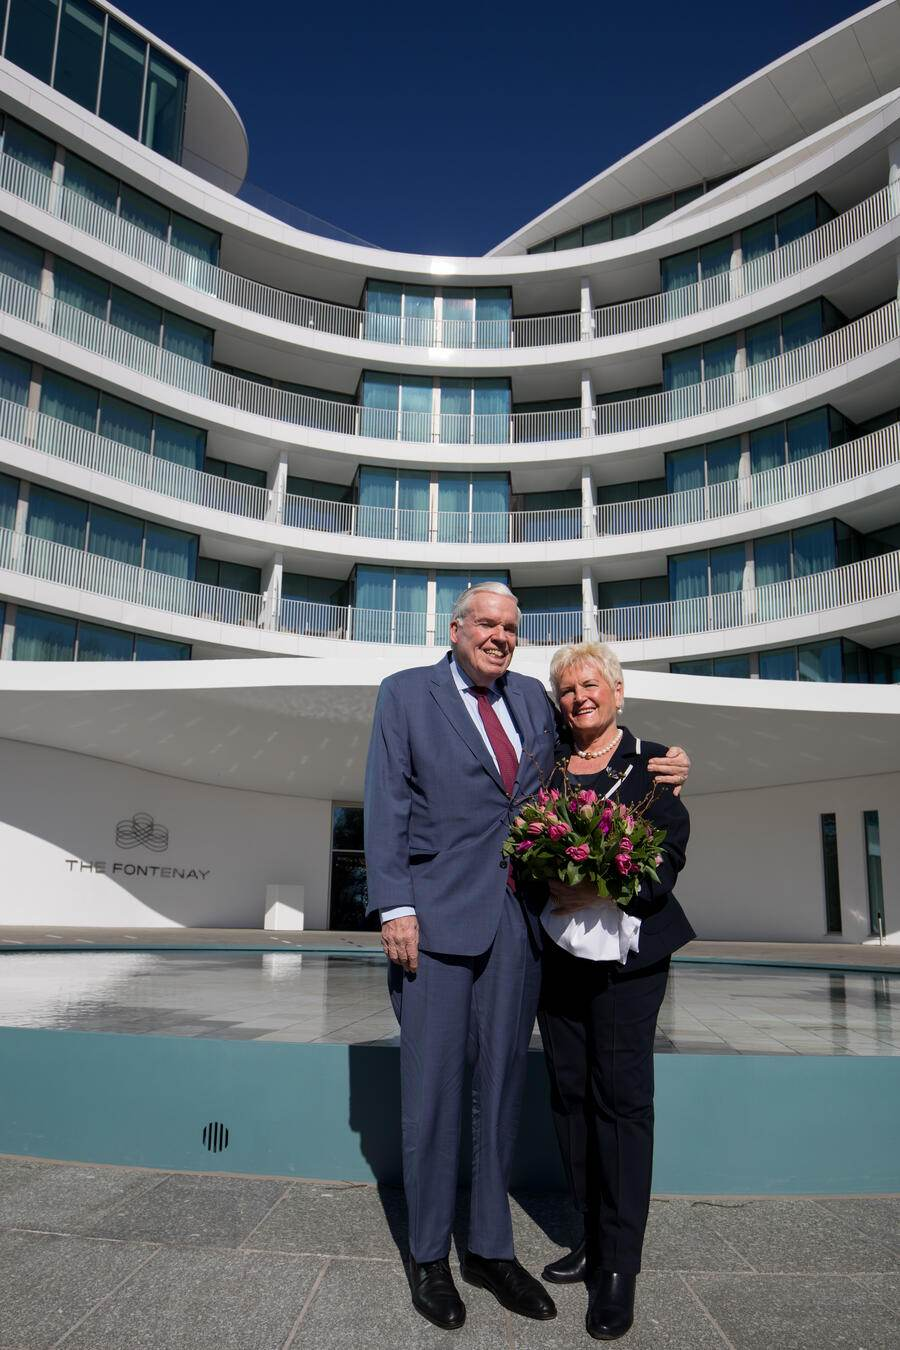 19 March 2018, Germany, Hamburg: Logistics billionaire and Hamburger SV investor Klaus Michael Kuehne and his wife Christine stand outside 'The Fontenay'. Kuehne gave a press conference to speak about the opening of the new hotel. Photo: Christian Charisius/dpa | Verwendung weltweit (KEYSTONE/DPA/Christian Charisius)